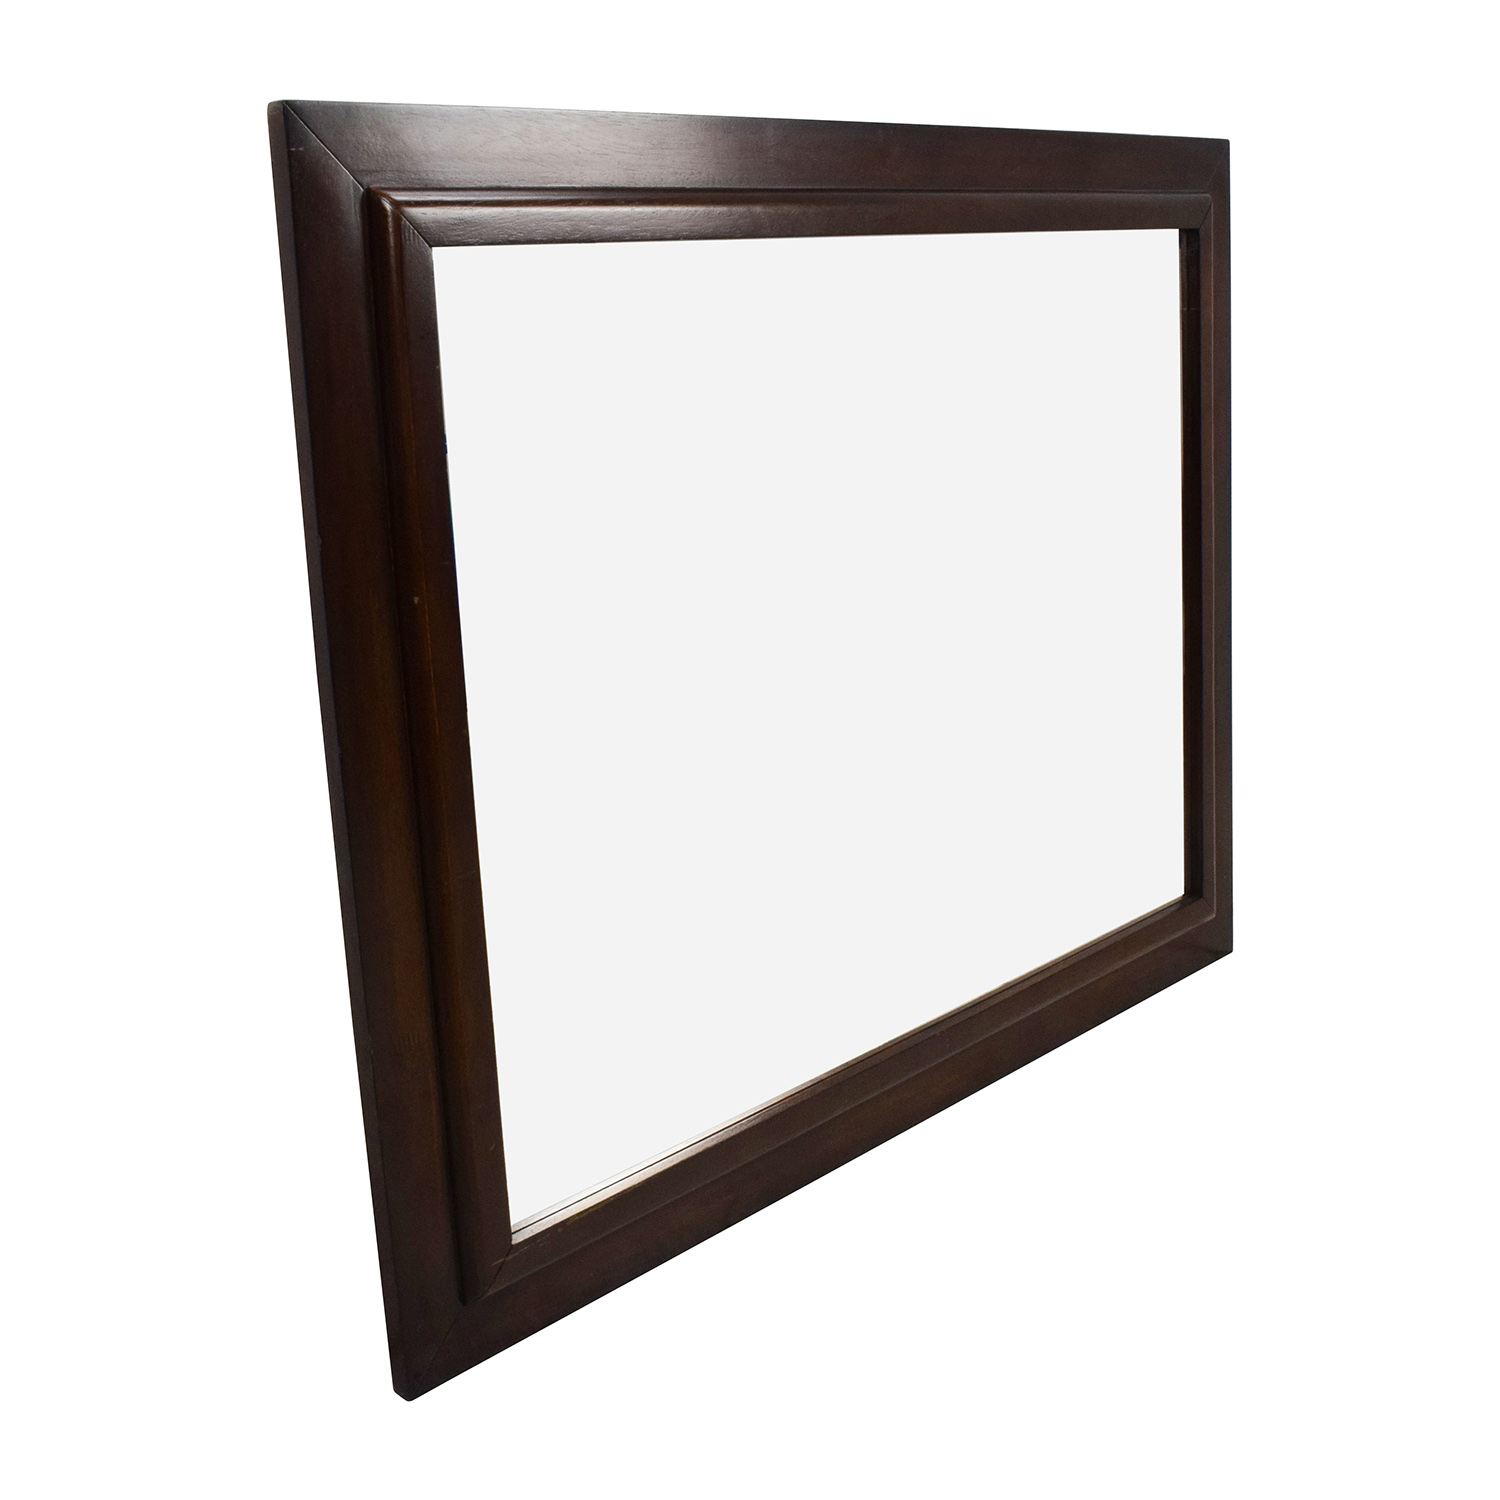 80 off large square wood framed wall mirror decor for Square mirror